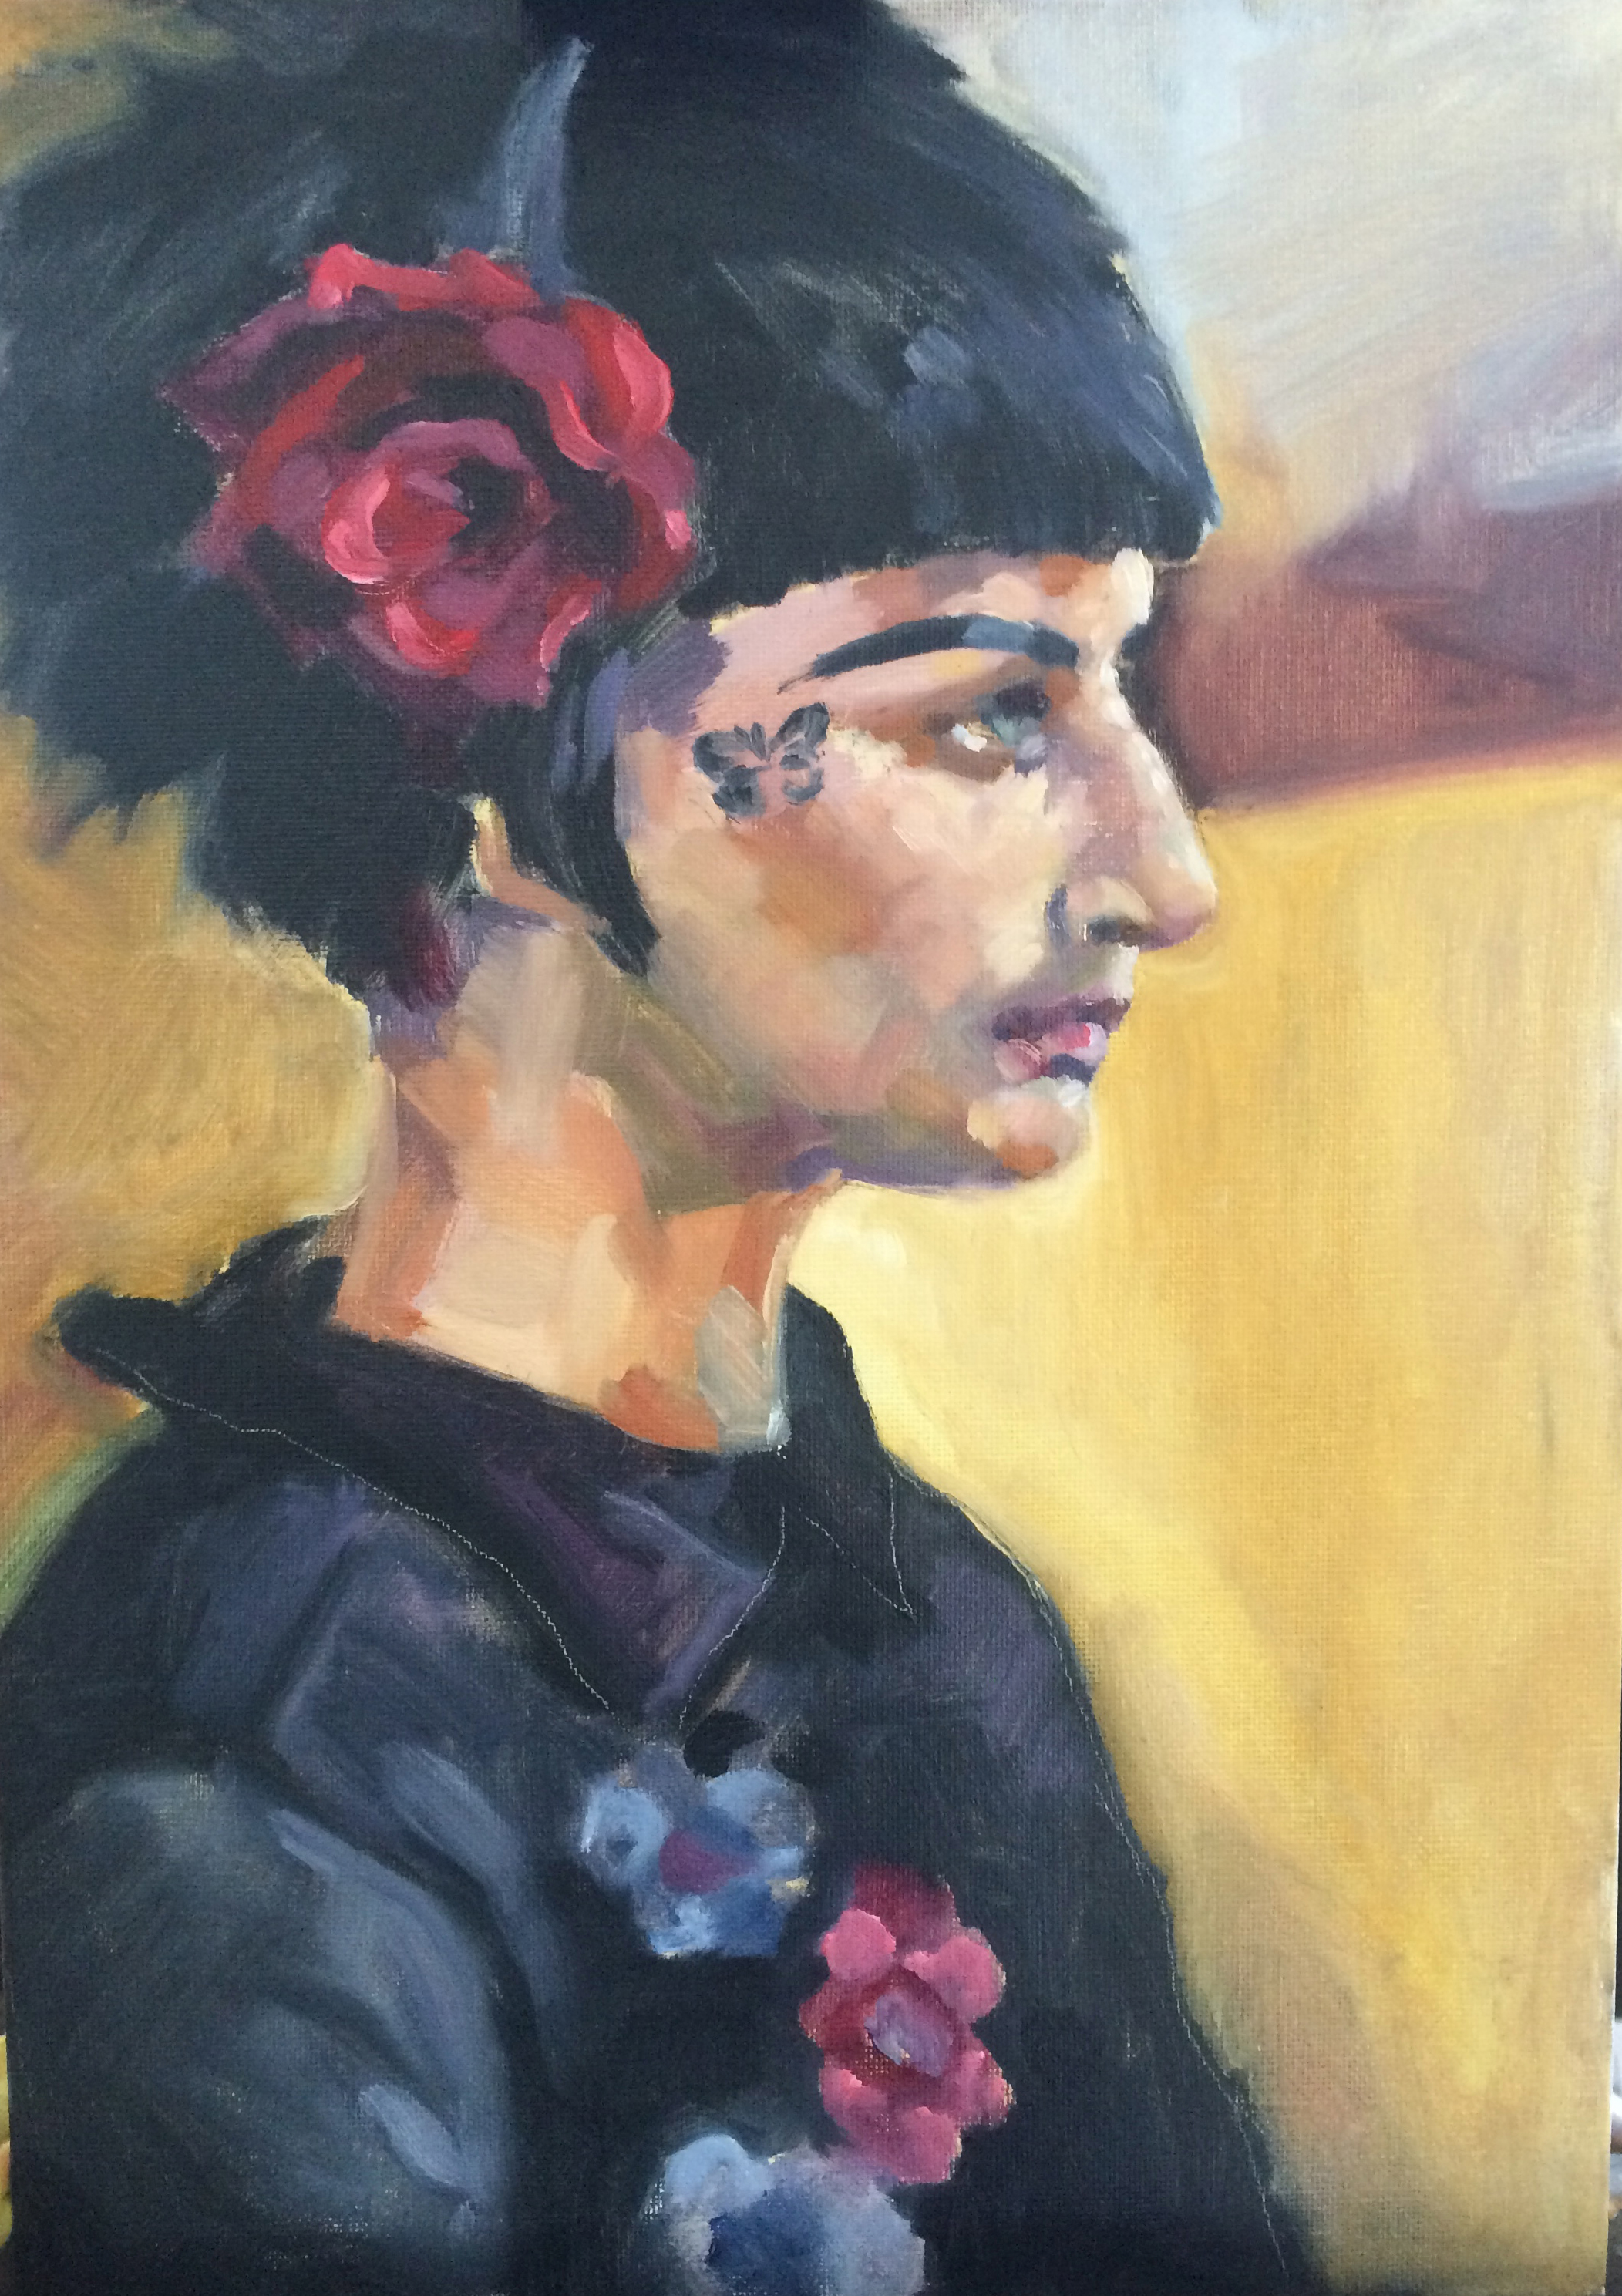 Profile of Laura from Portrait Painting Masterclass with Ilaria Rosselli Del Turco. May 2016.